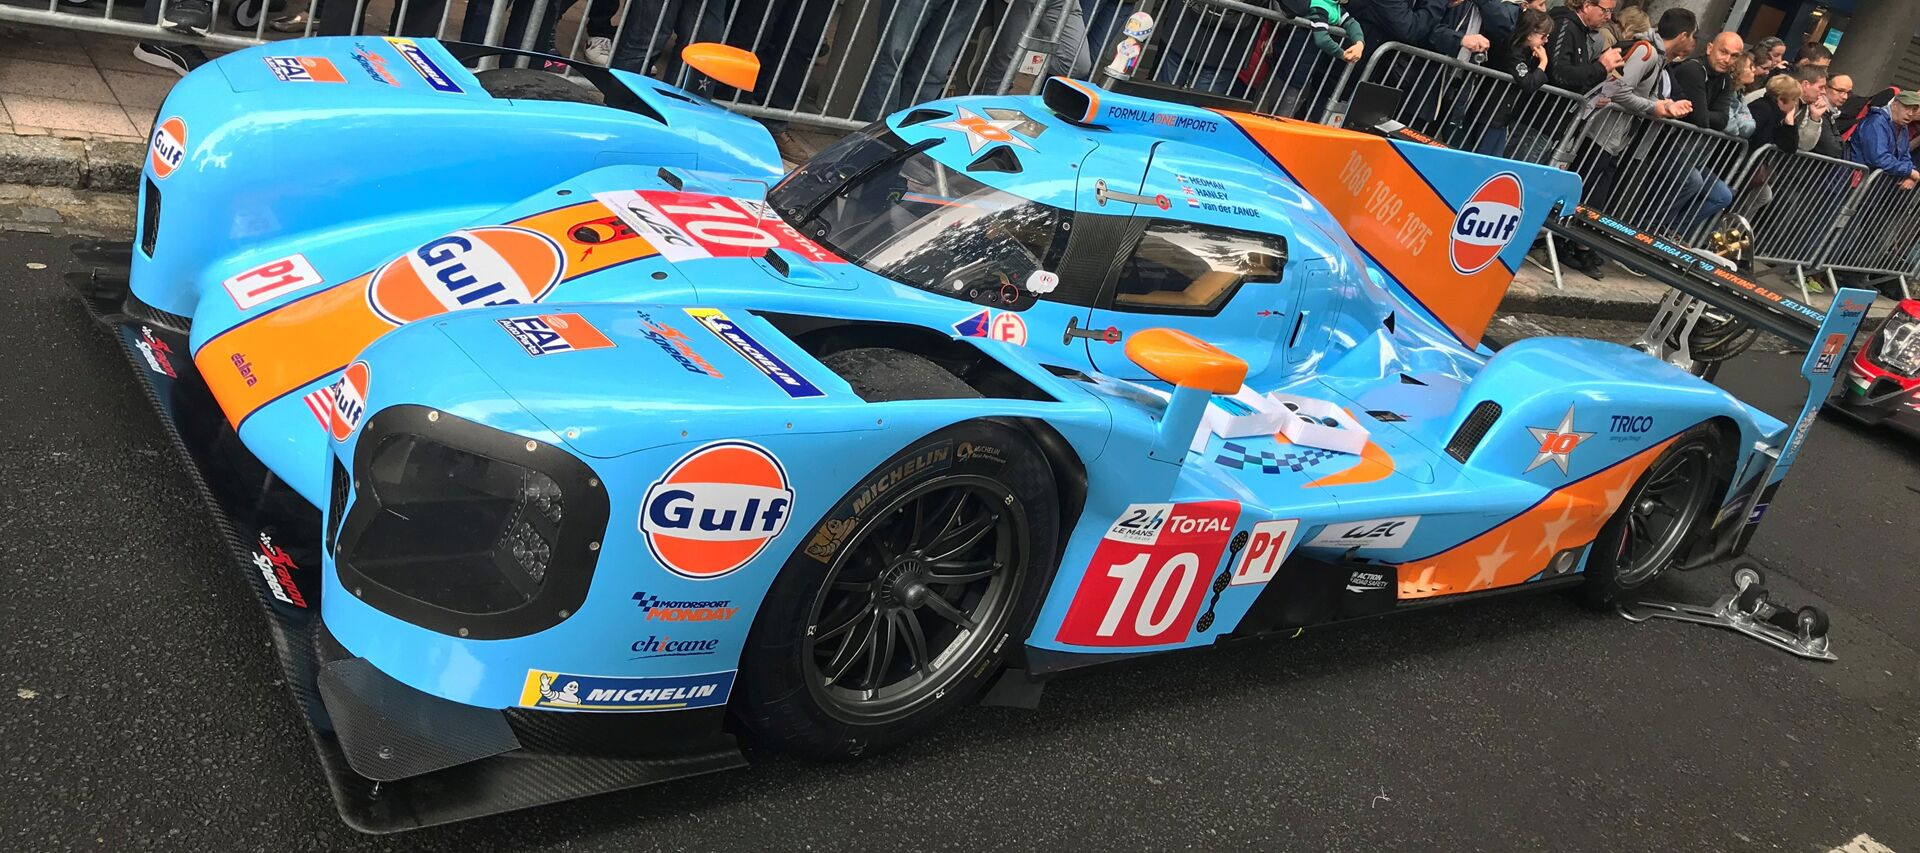 Dragon Speed Gulf Livery 2019